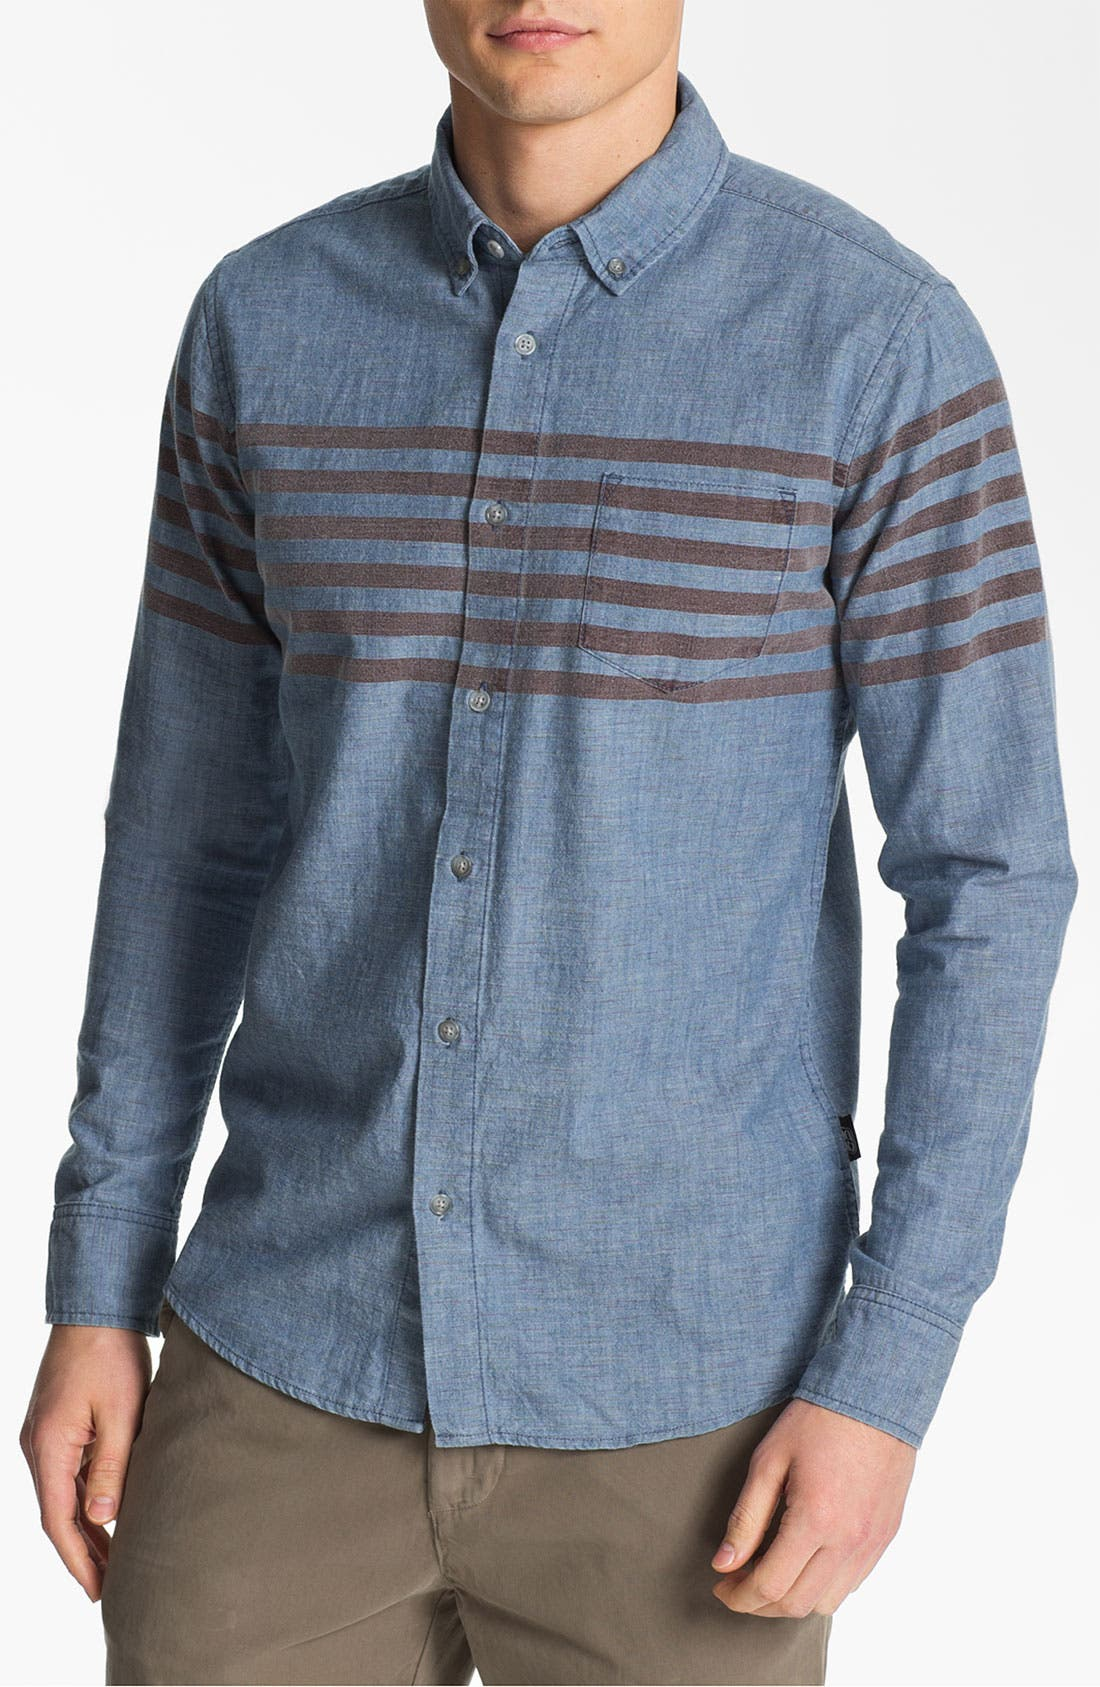 Alternate Image 1 Selected - 55DSL Stripe Print Denim Cotton Shirt